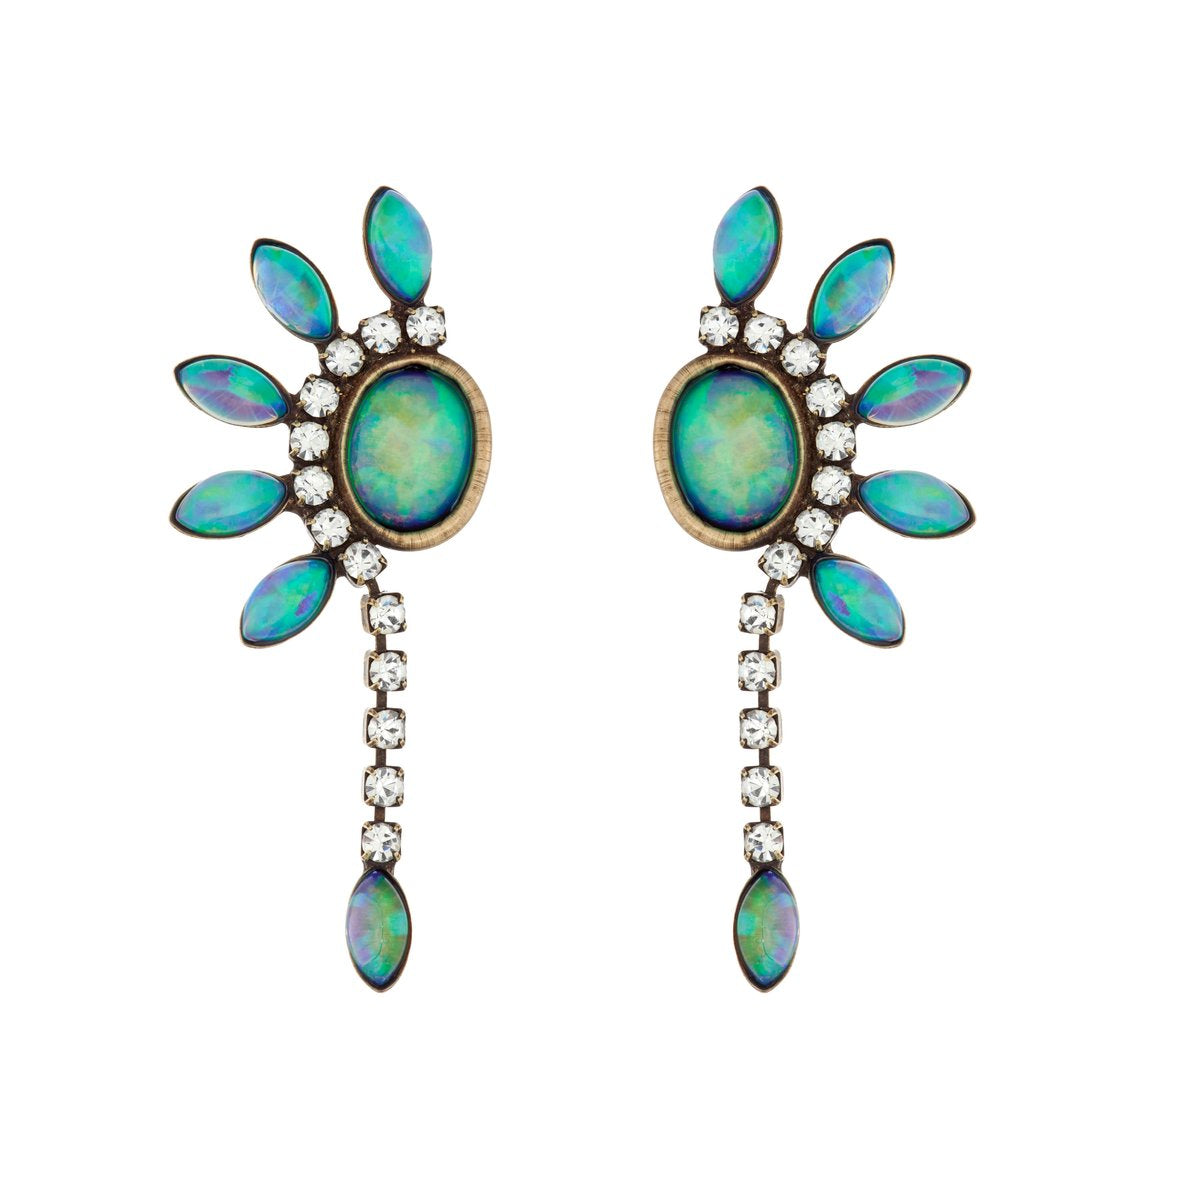 Tinka Earrings - Outlette Jewelry